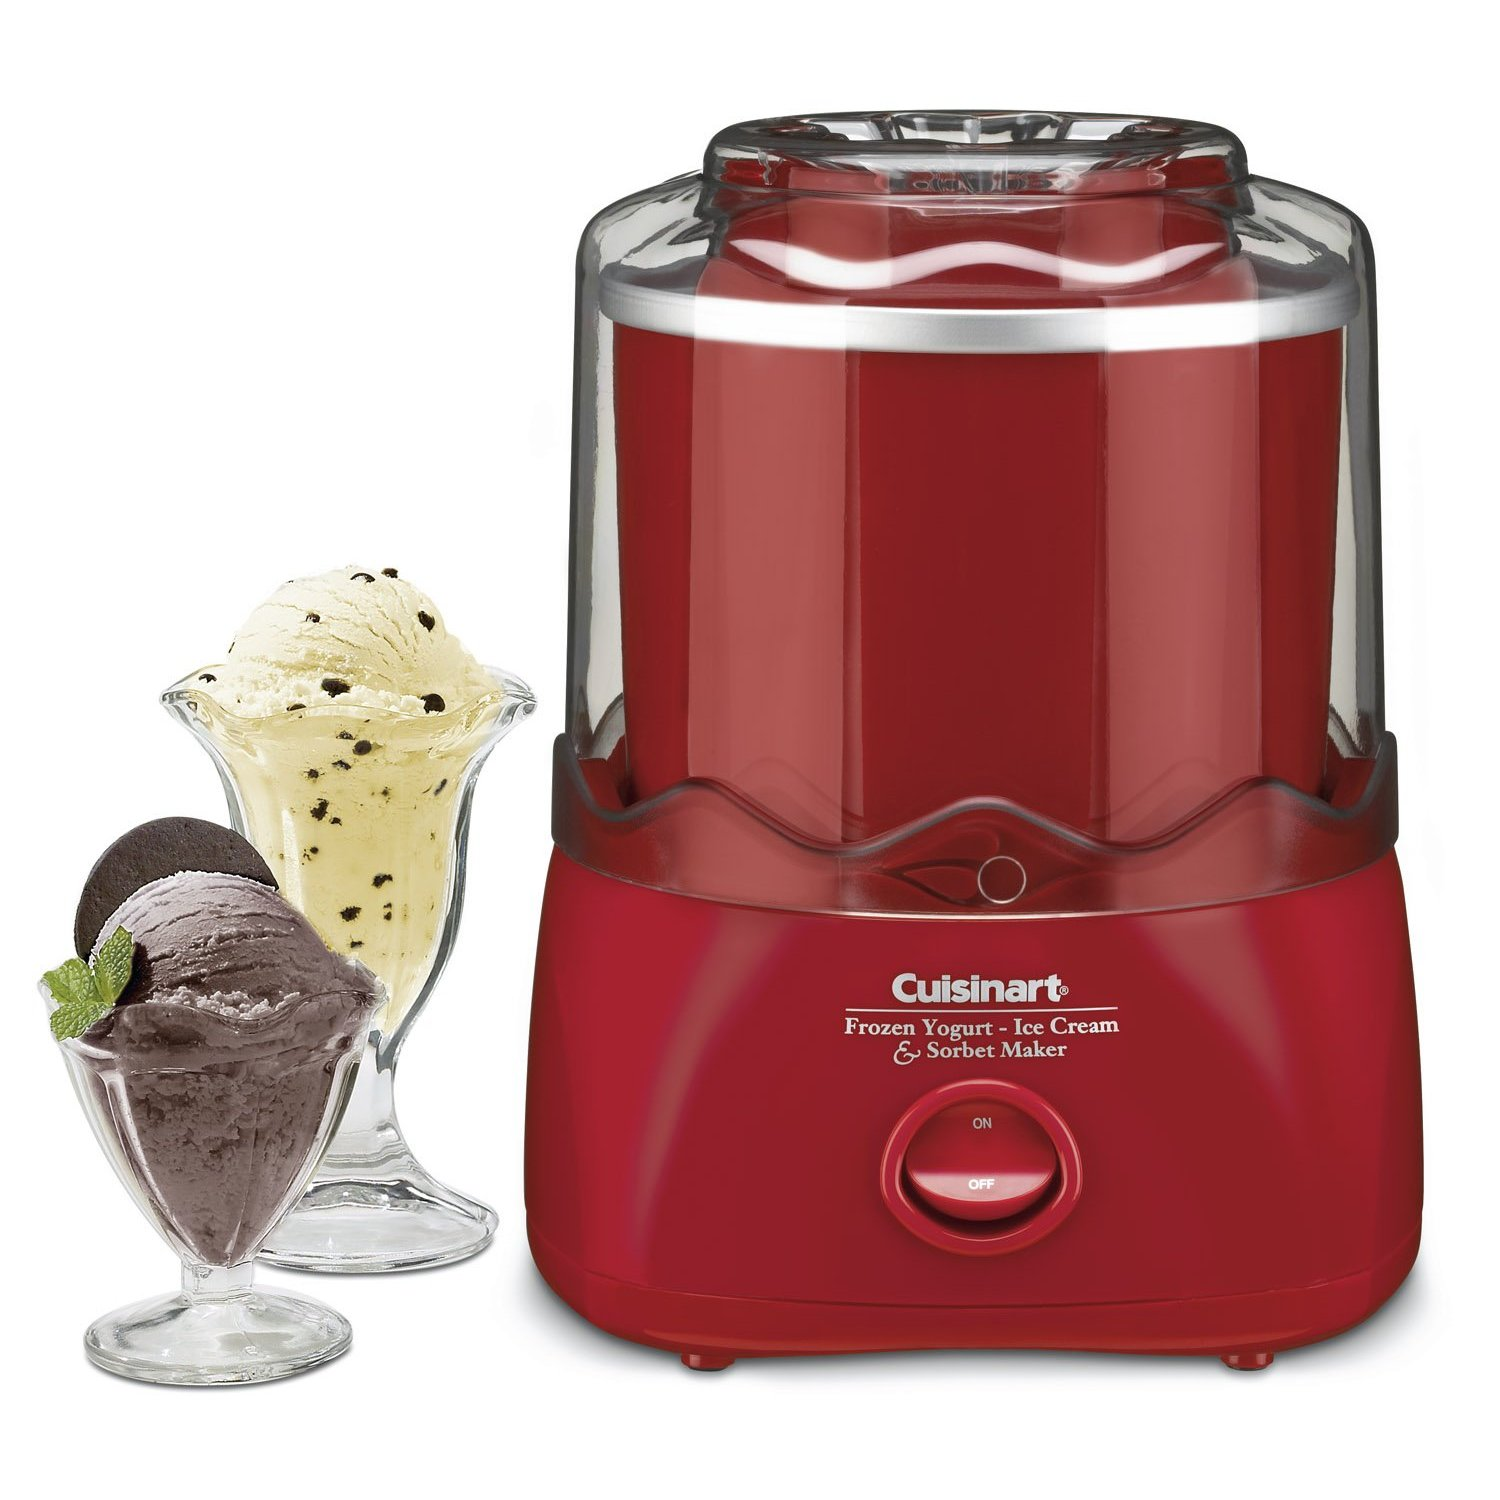 Kitchen aid icecream maker photo - 1